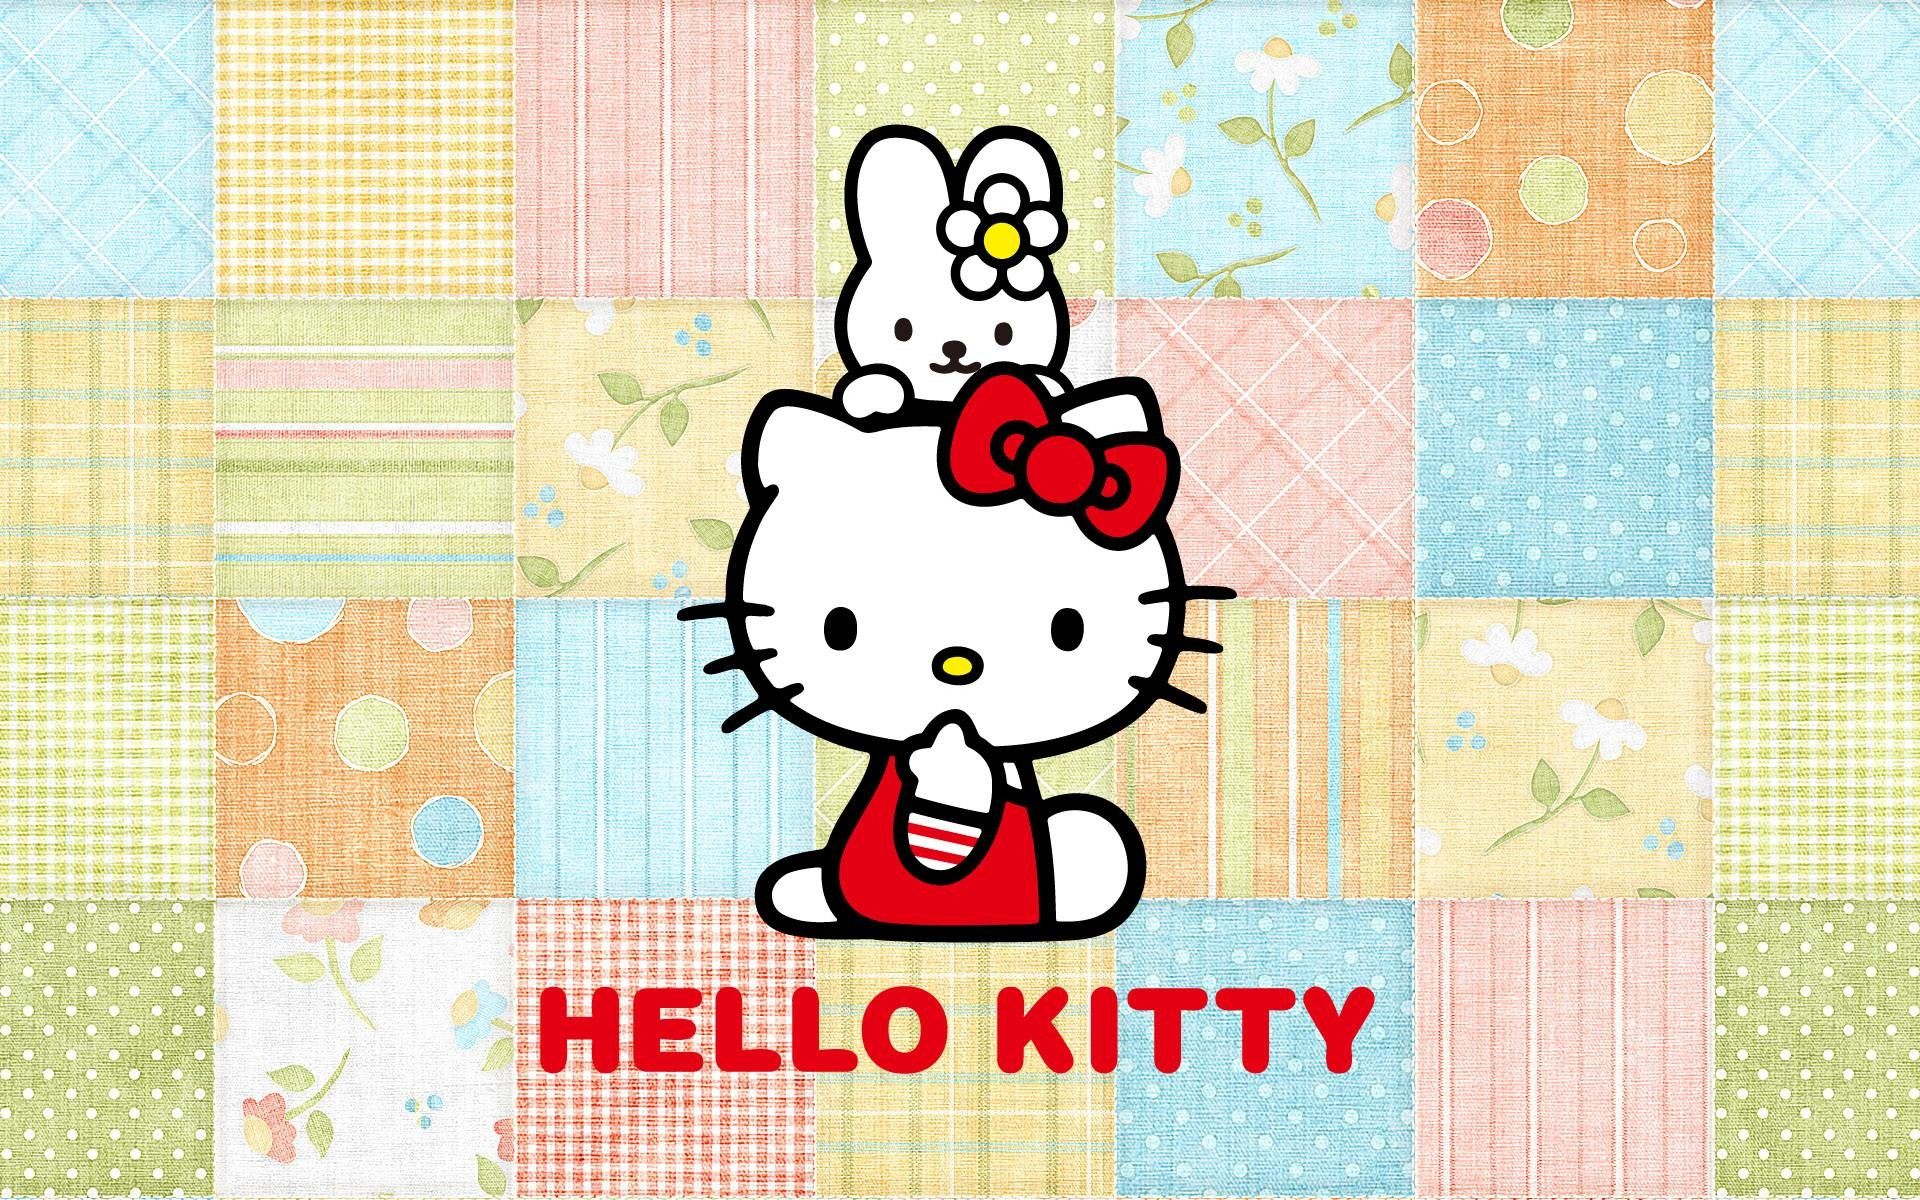 Hello kitty wallpaper desktop 57 images 1920x1200 new hello kitty wallpapers hello kitty wallpapers part 2 thecheapjerseys Choice Image